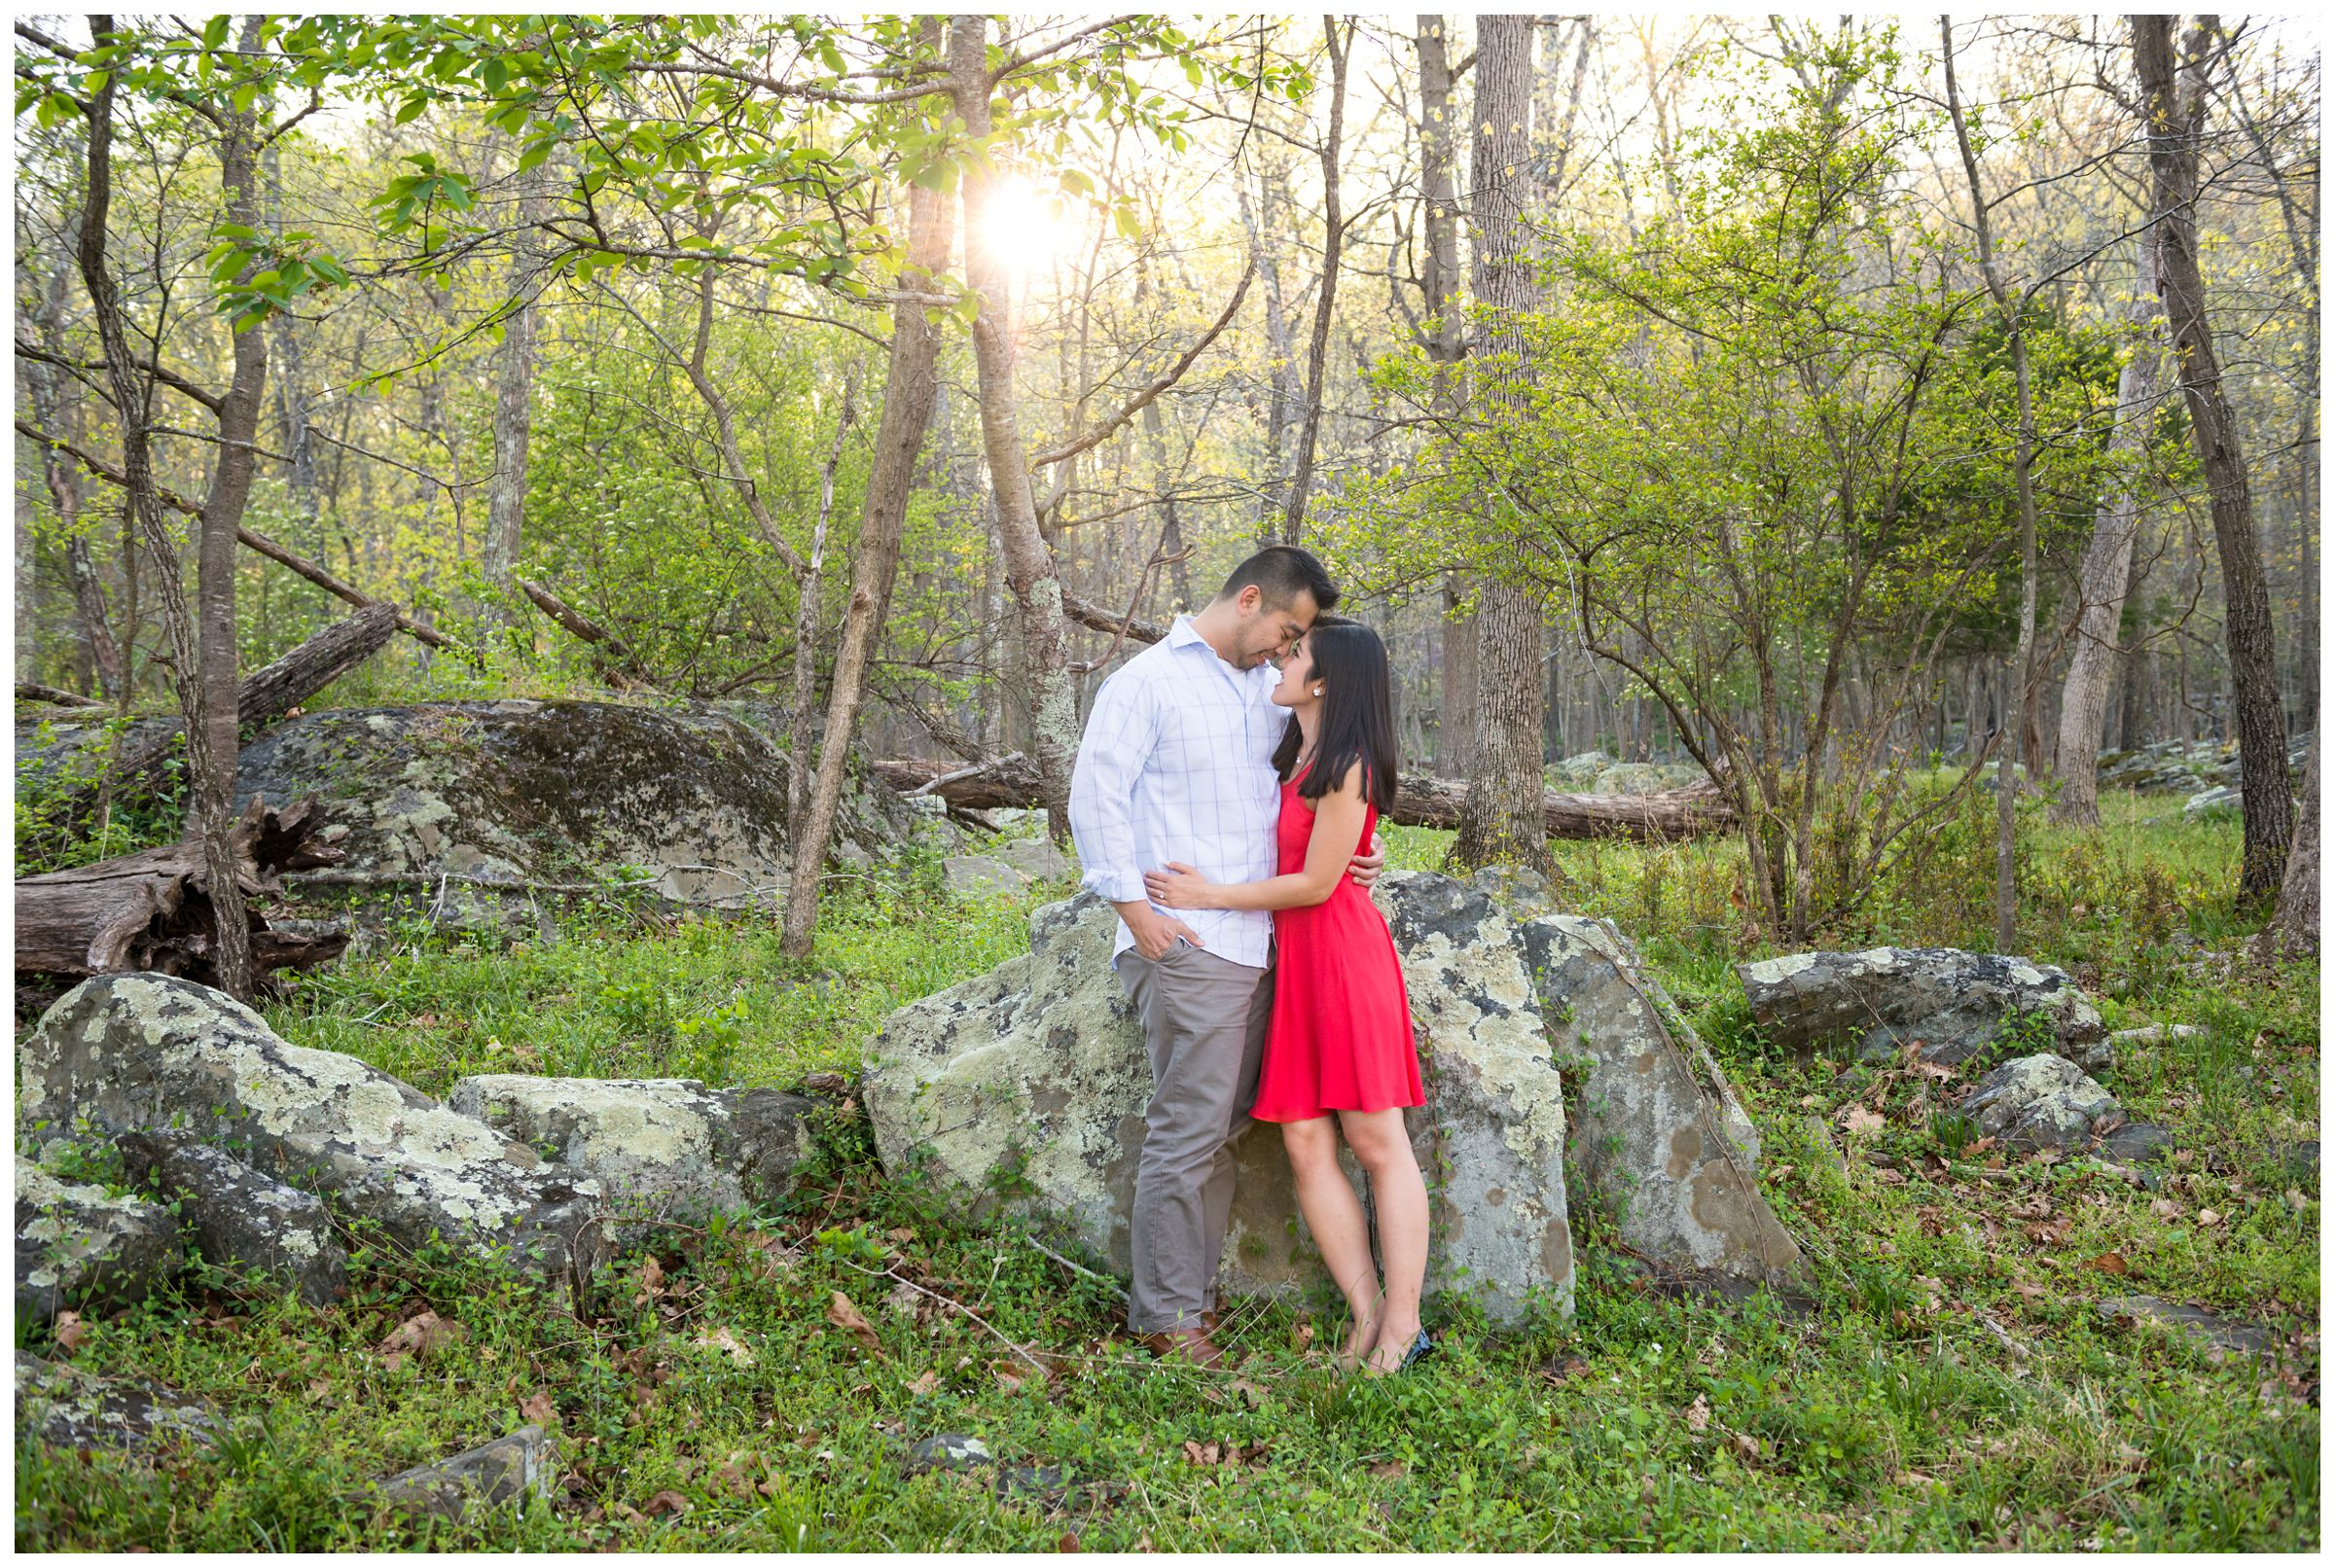 engagement photos in forest as sun sets at Great Falls Park in Northern Virginia